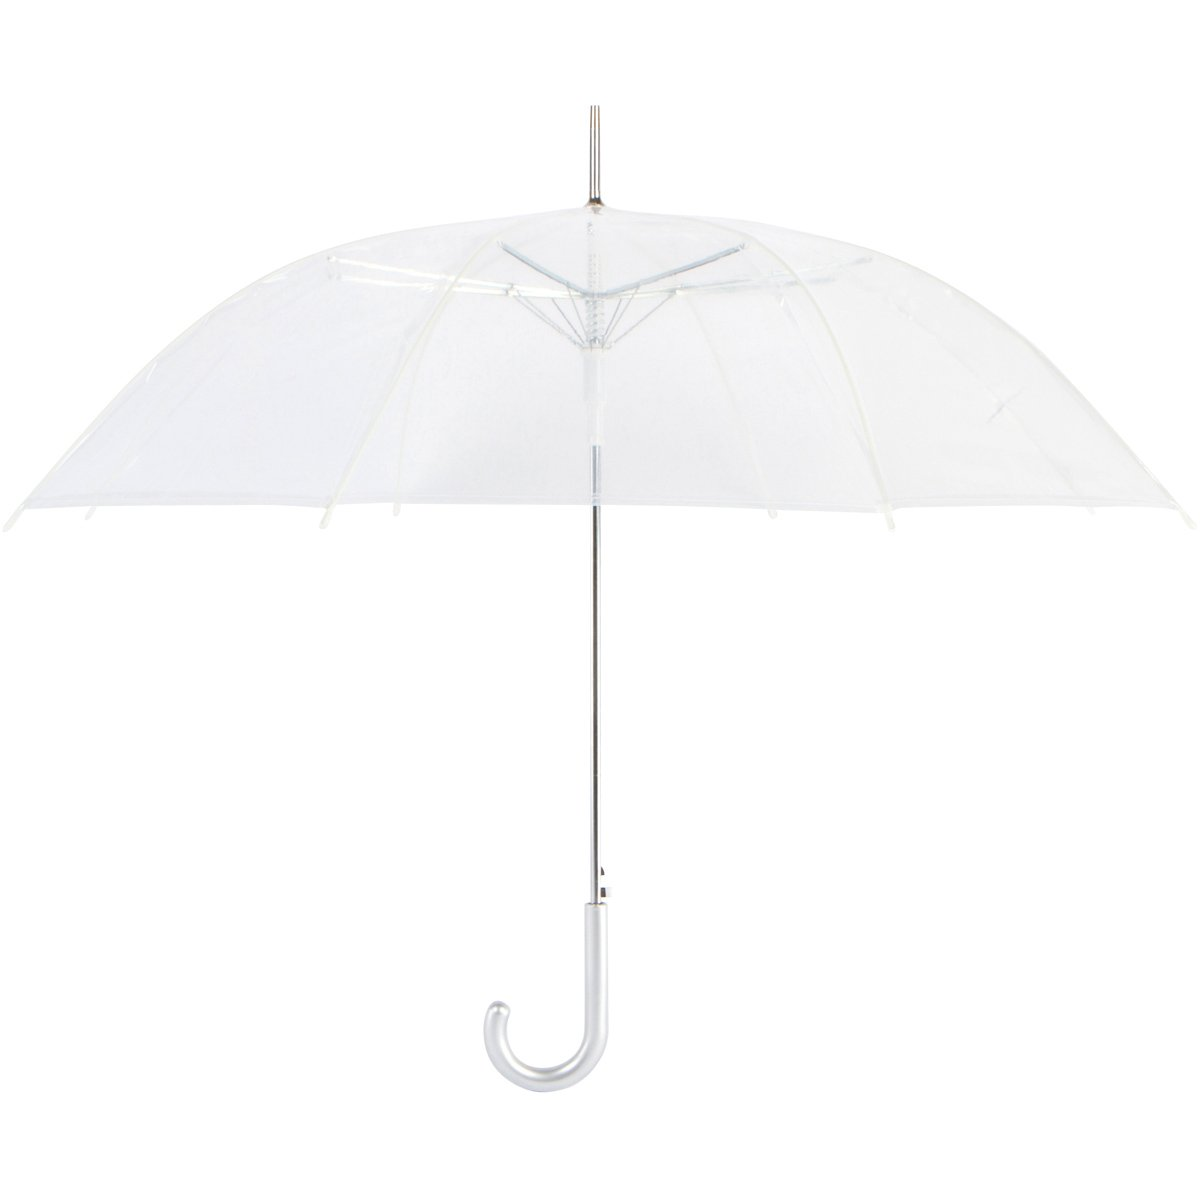 Cloak Umbrellas Auto Open Clear Umbrellas, 46'' ARC